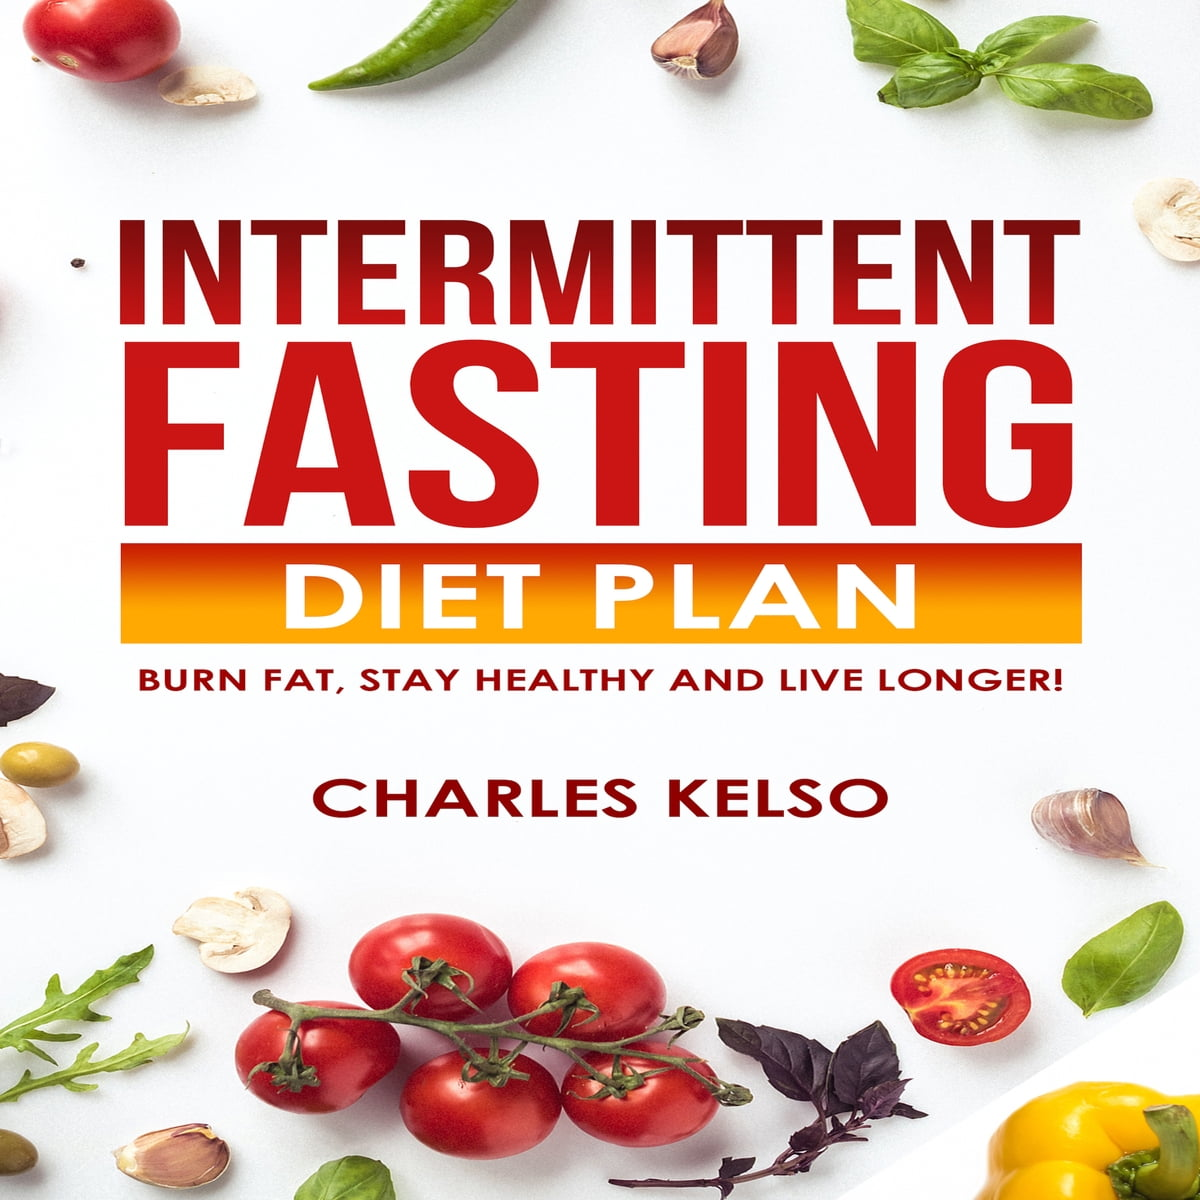 Intermittent Fasting Diet Plan: Burn Fat, Stay Healthy and Live Longer!  audiobook by Charles Kelso - Rakuten Kobo